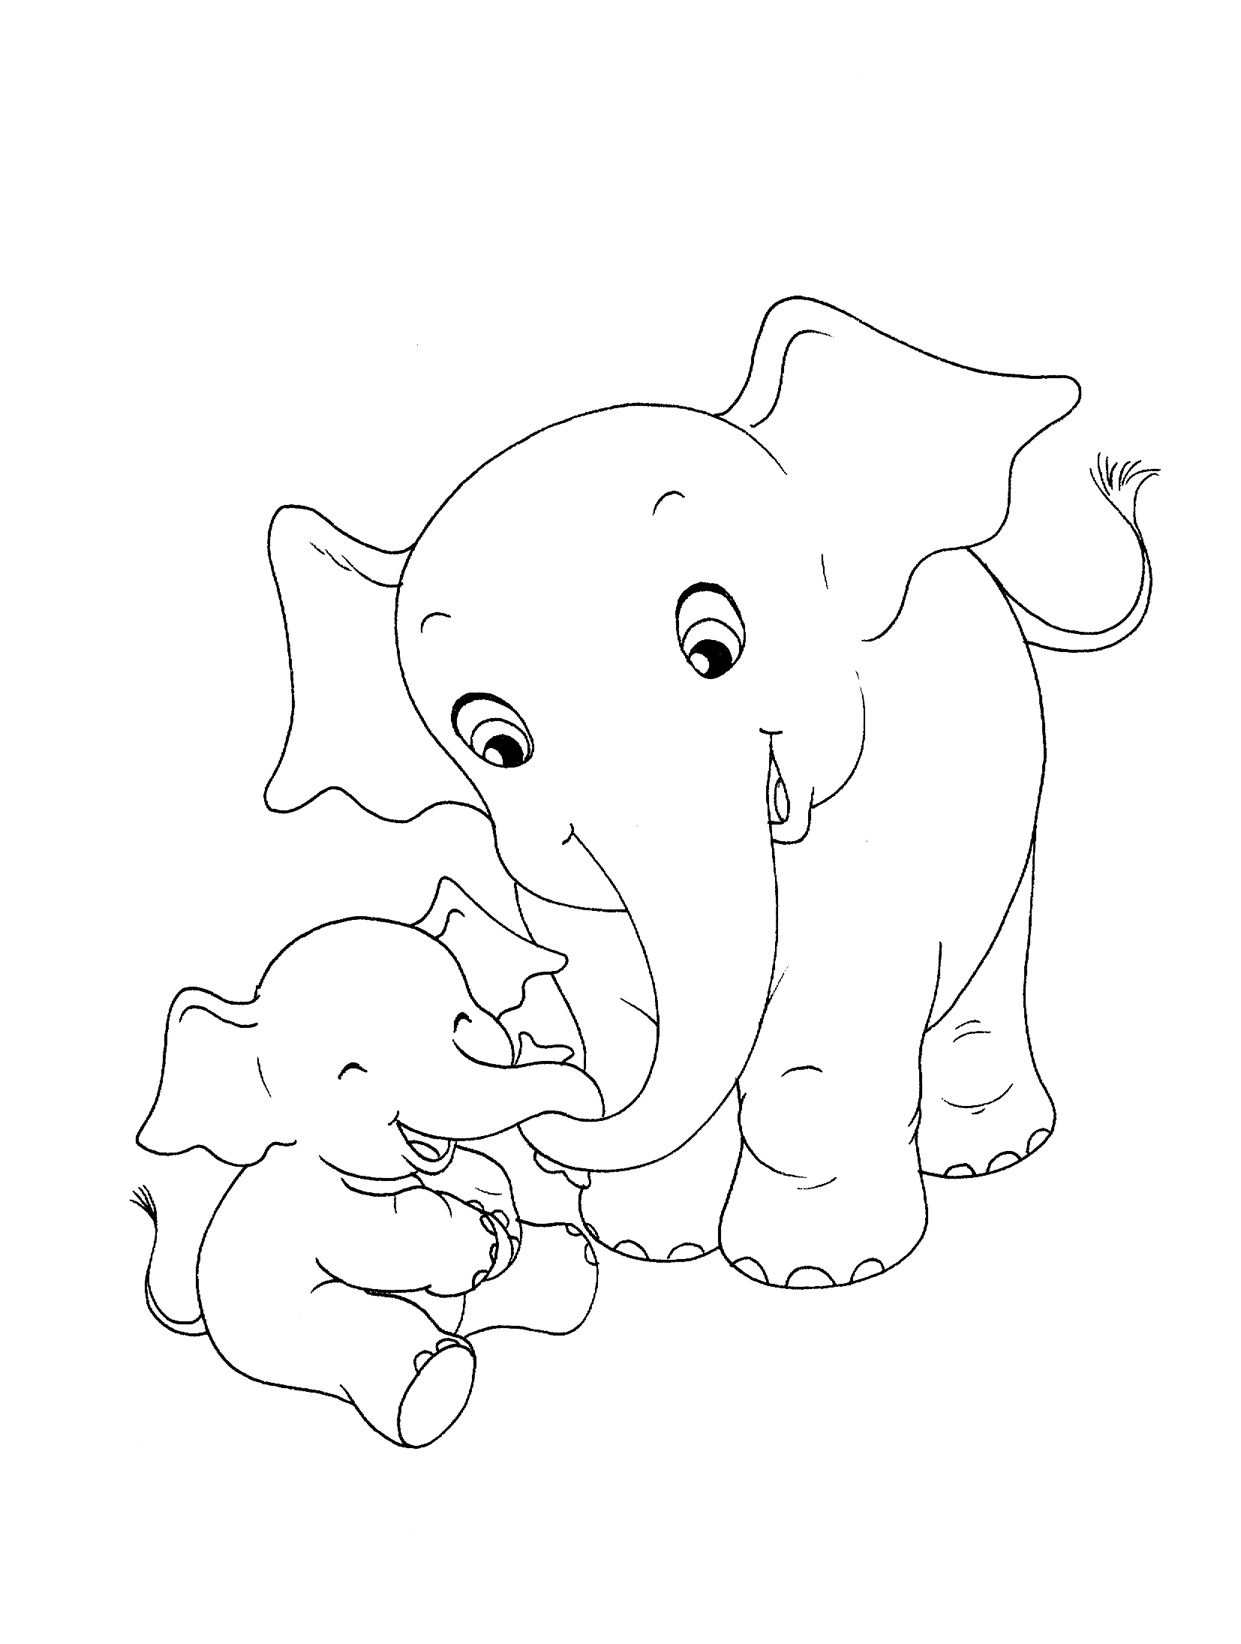 Pin By Rachel L On Kids Zoo Printables Coloring Pages Clip Arts